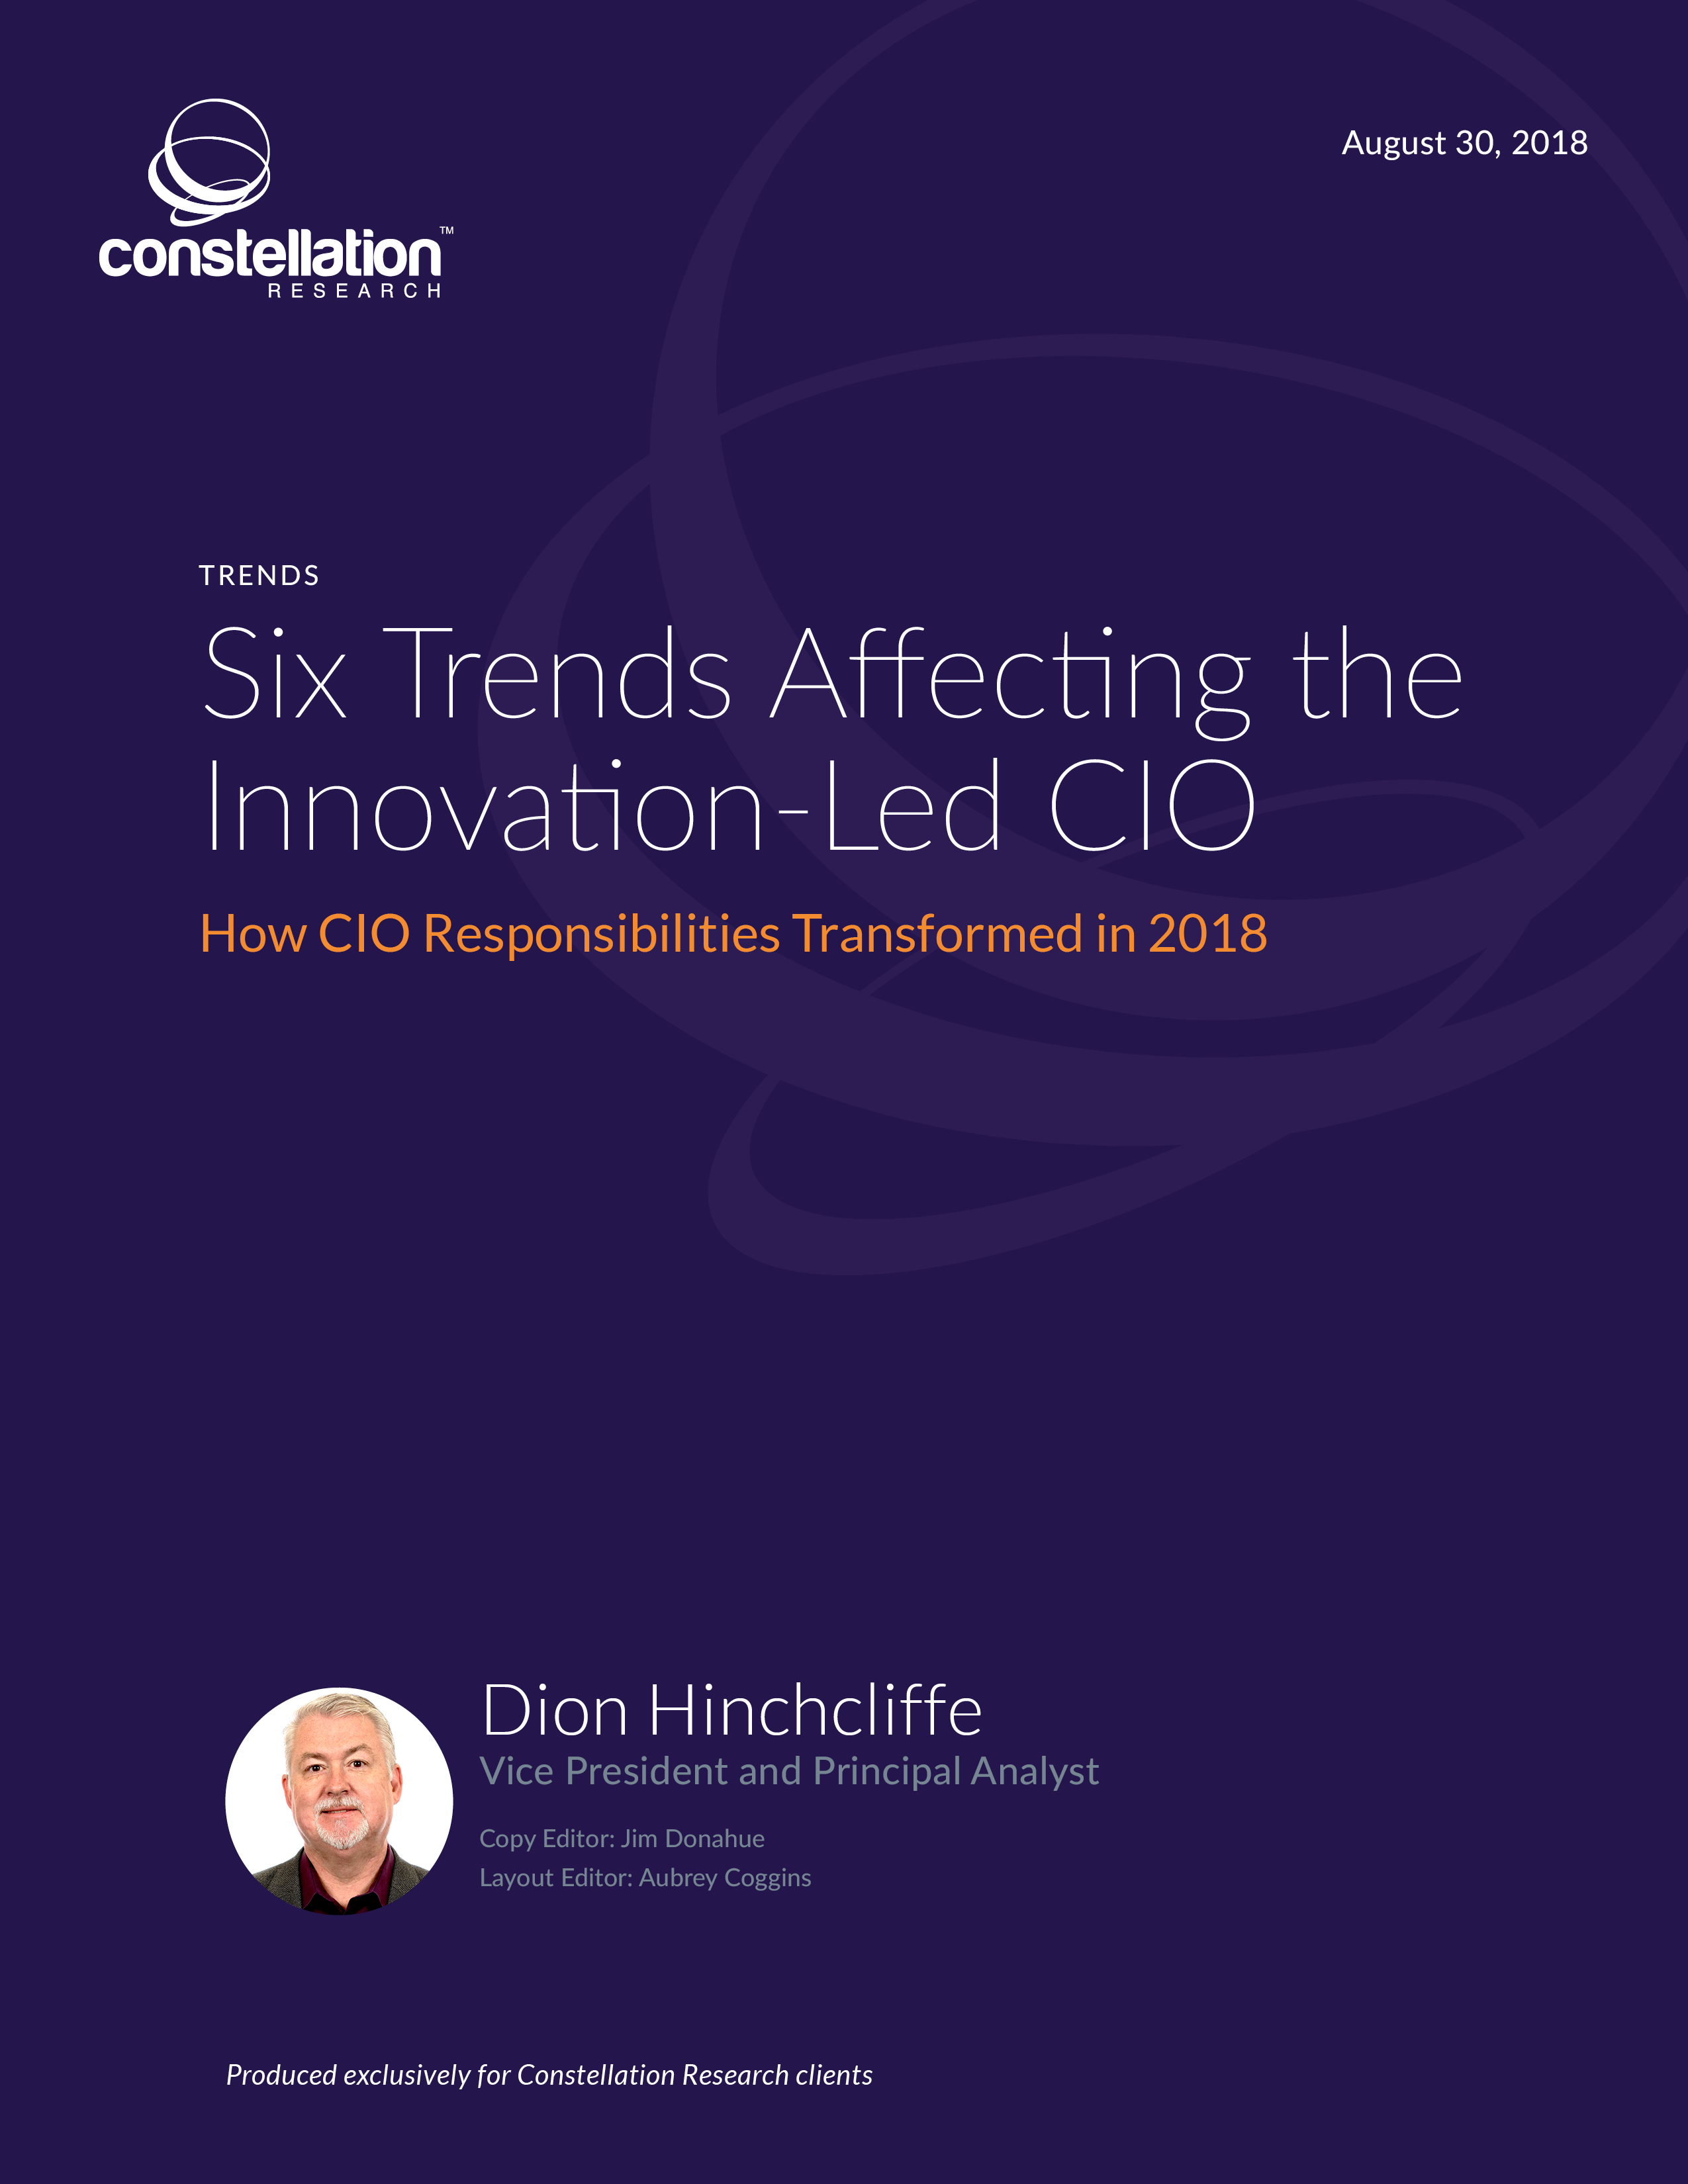 Six Trends Affecting the Innovation-Led CIO